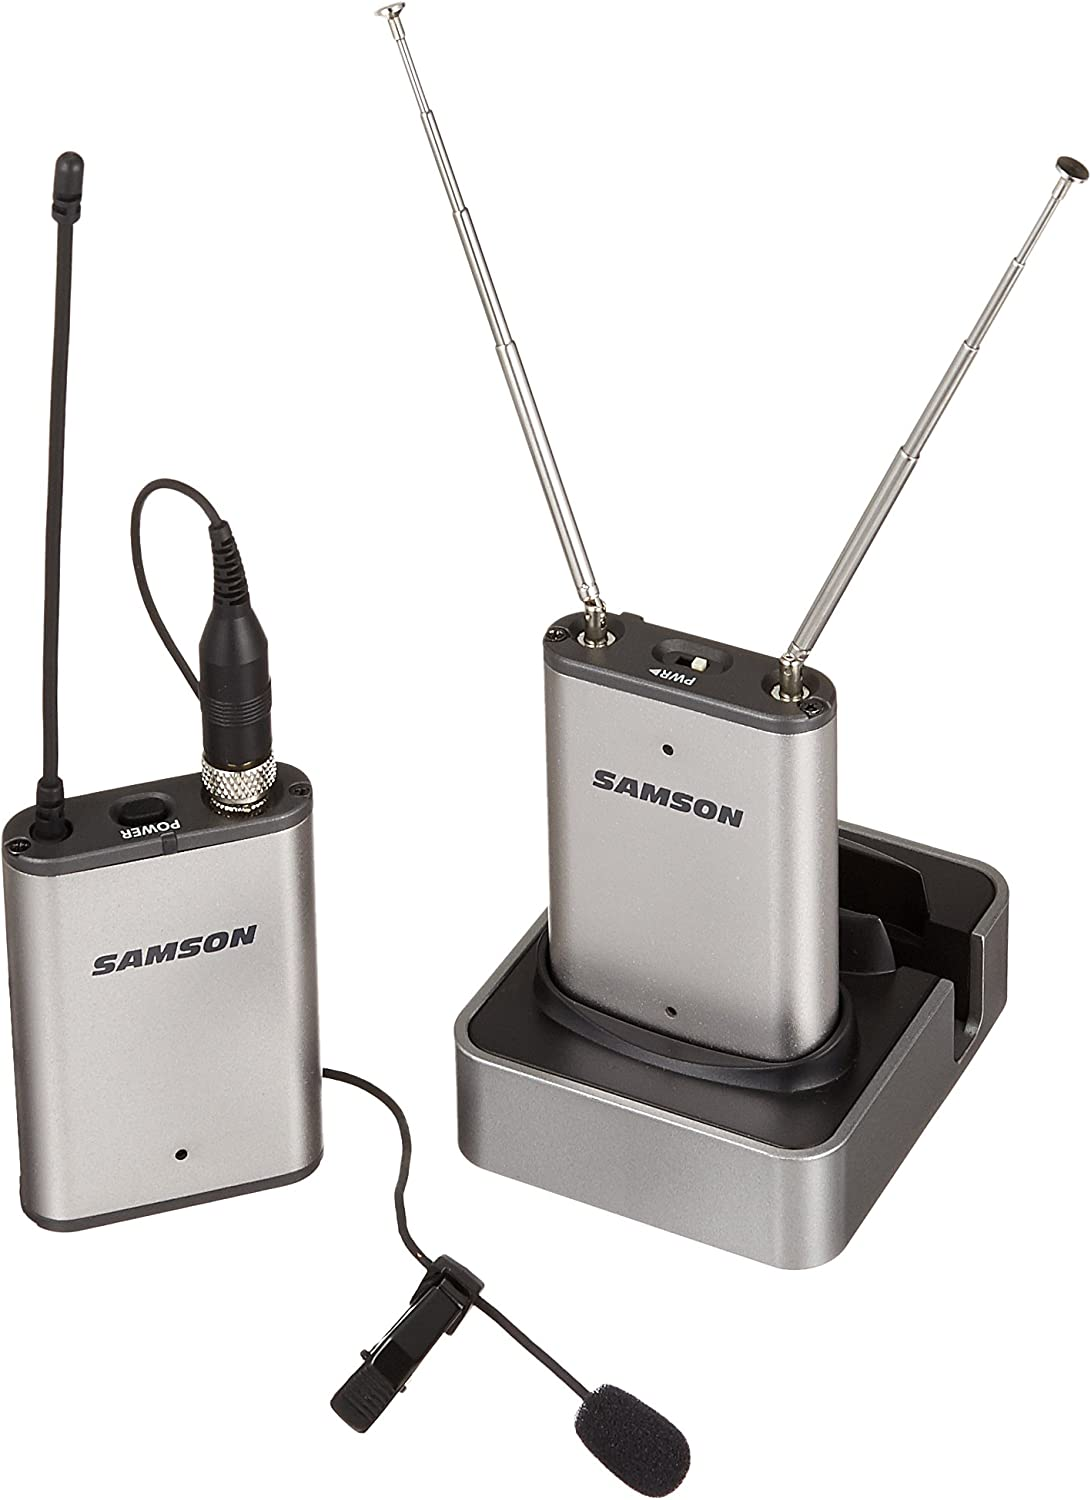 644.750 MHz N4 Samson Airline Micro Headset Wireless Microphone System